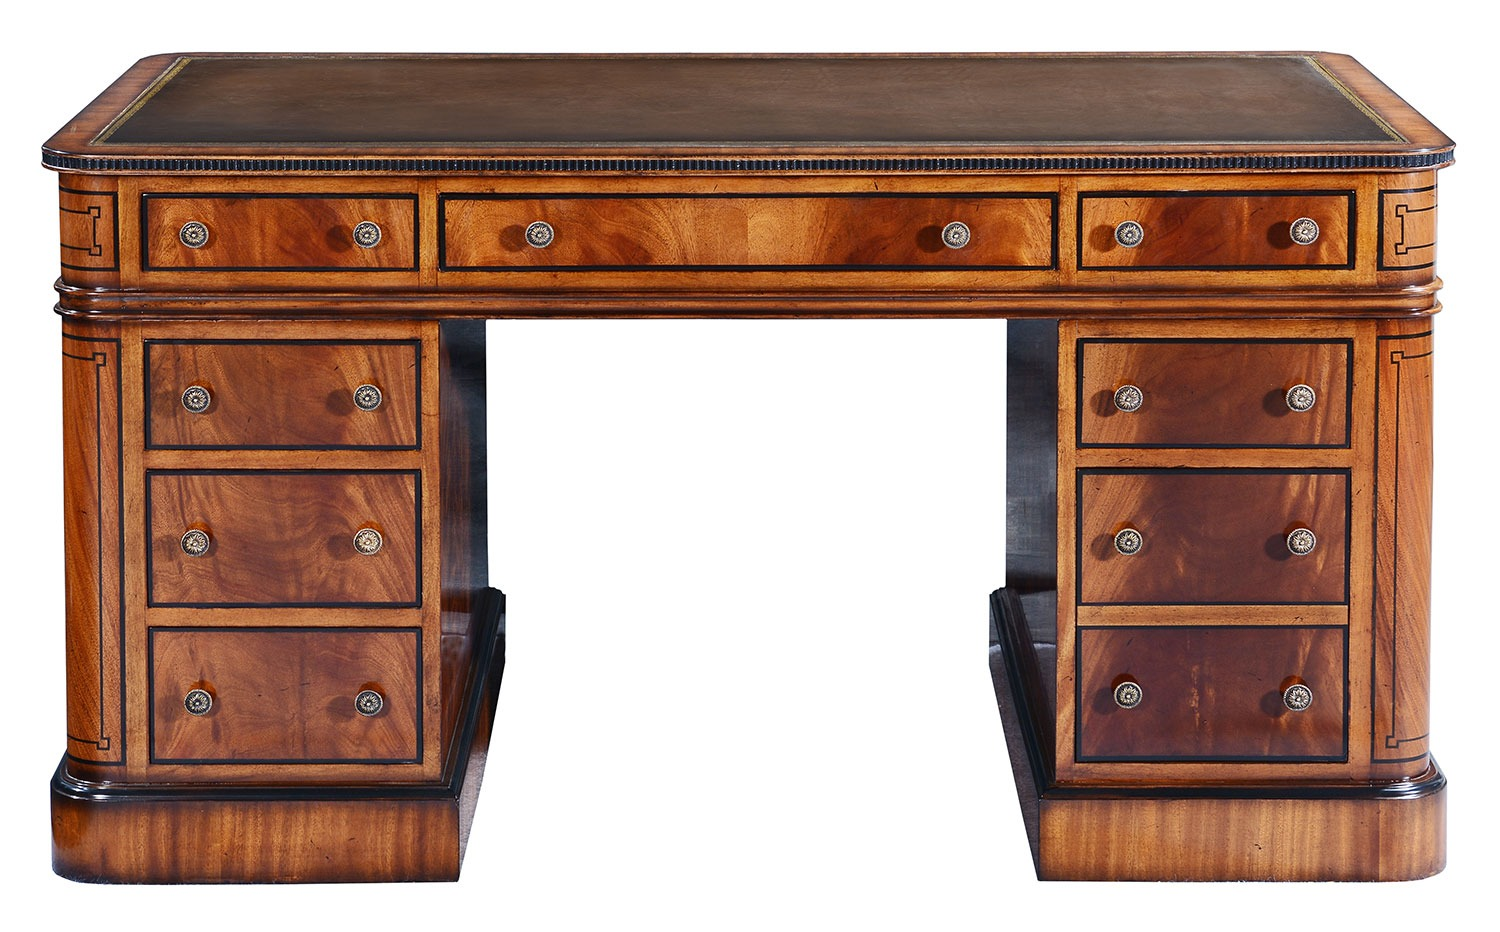 Thomas Hope style mahogany & ebonised pedestal desk